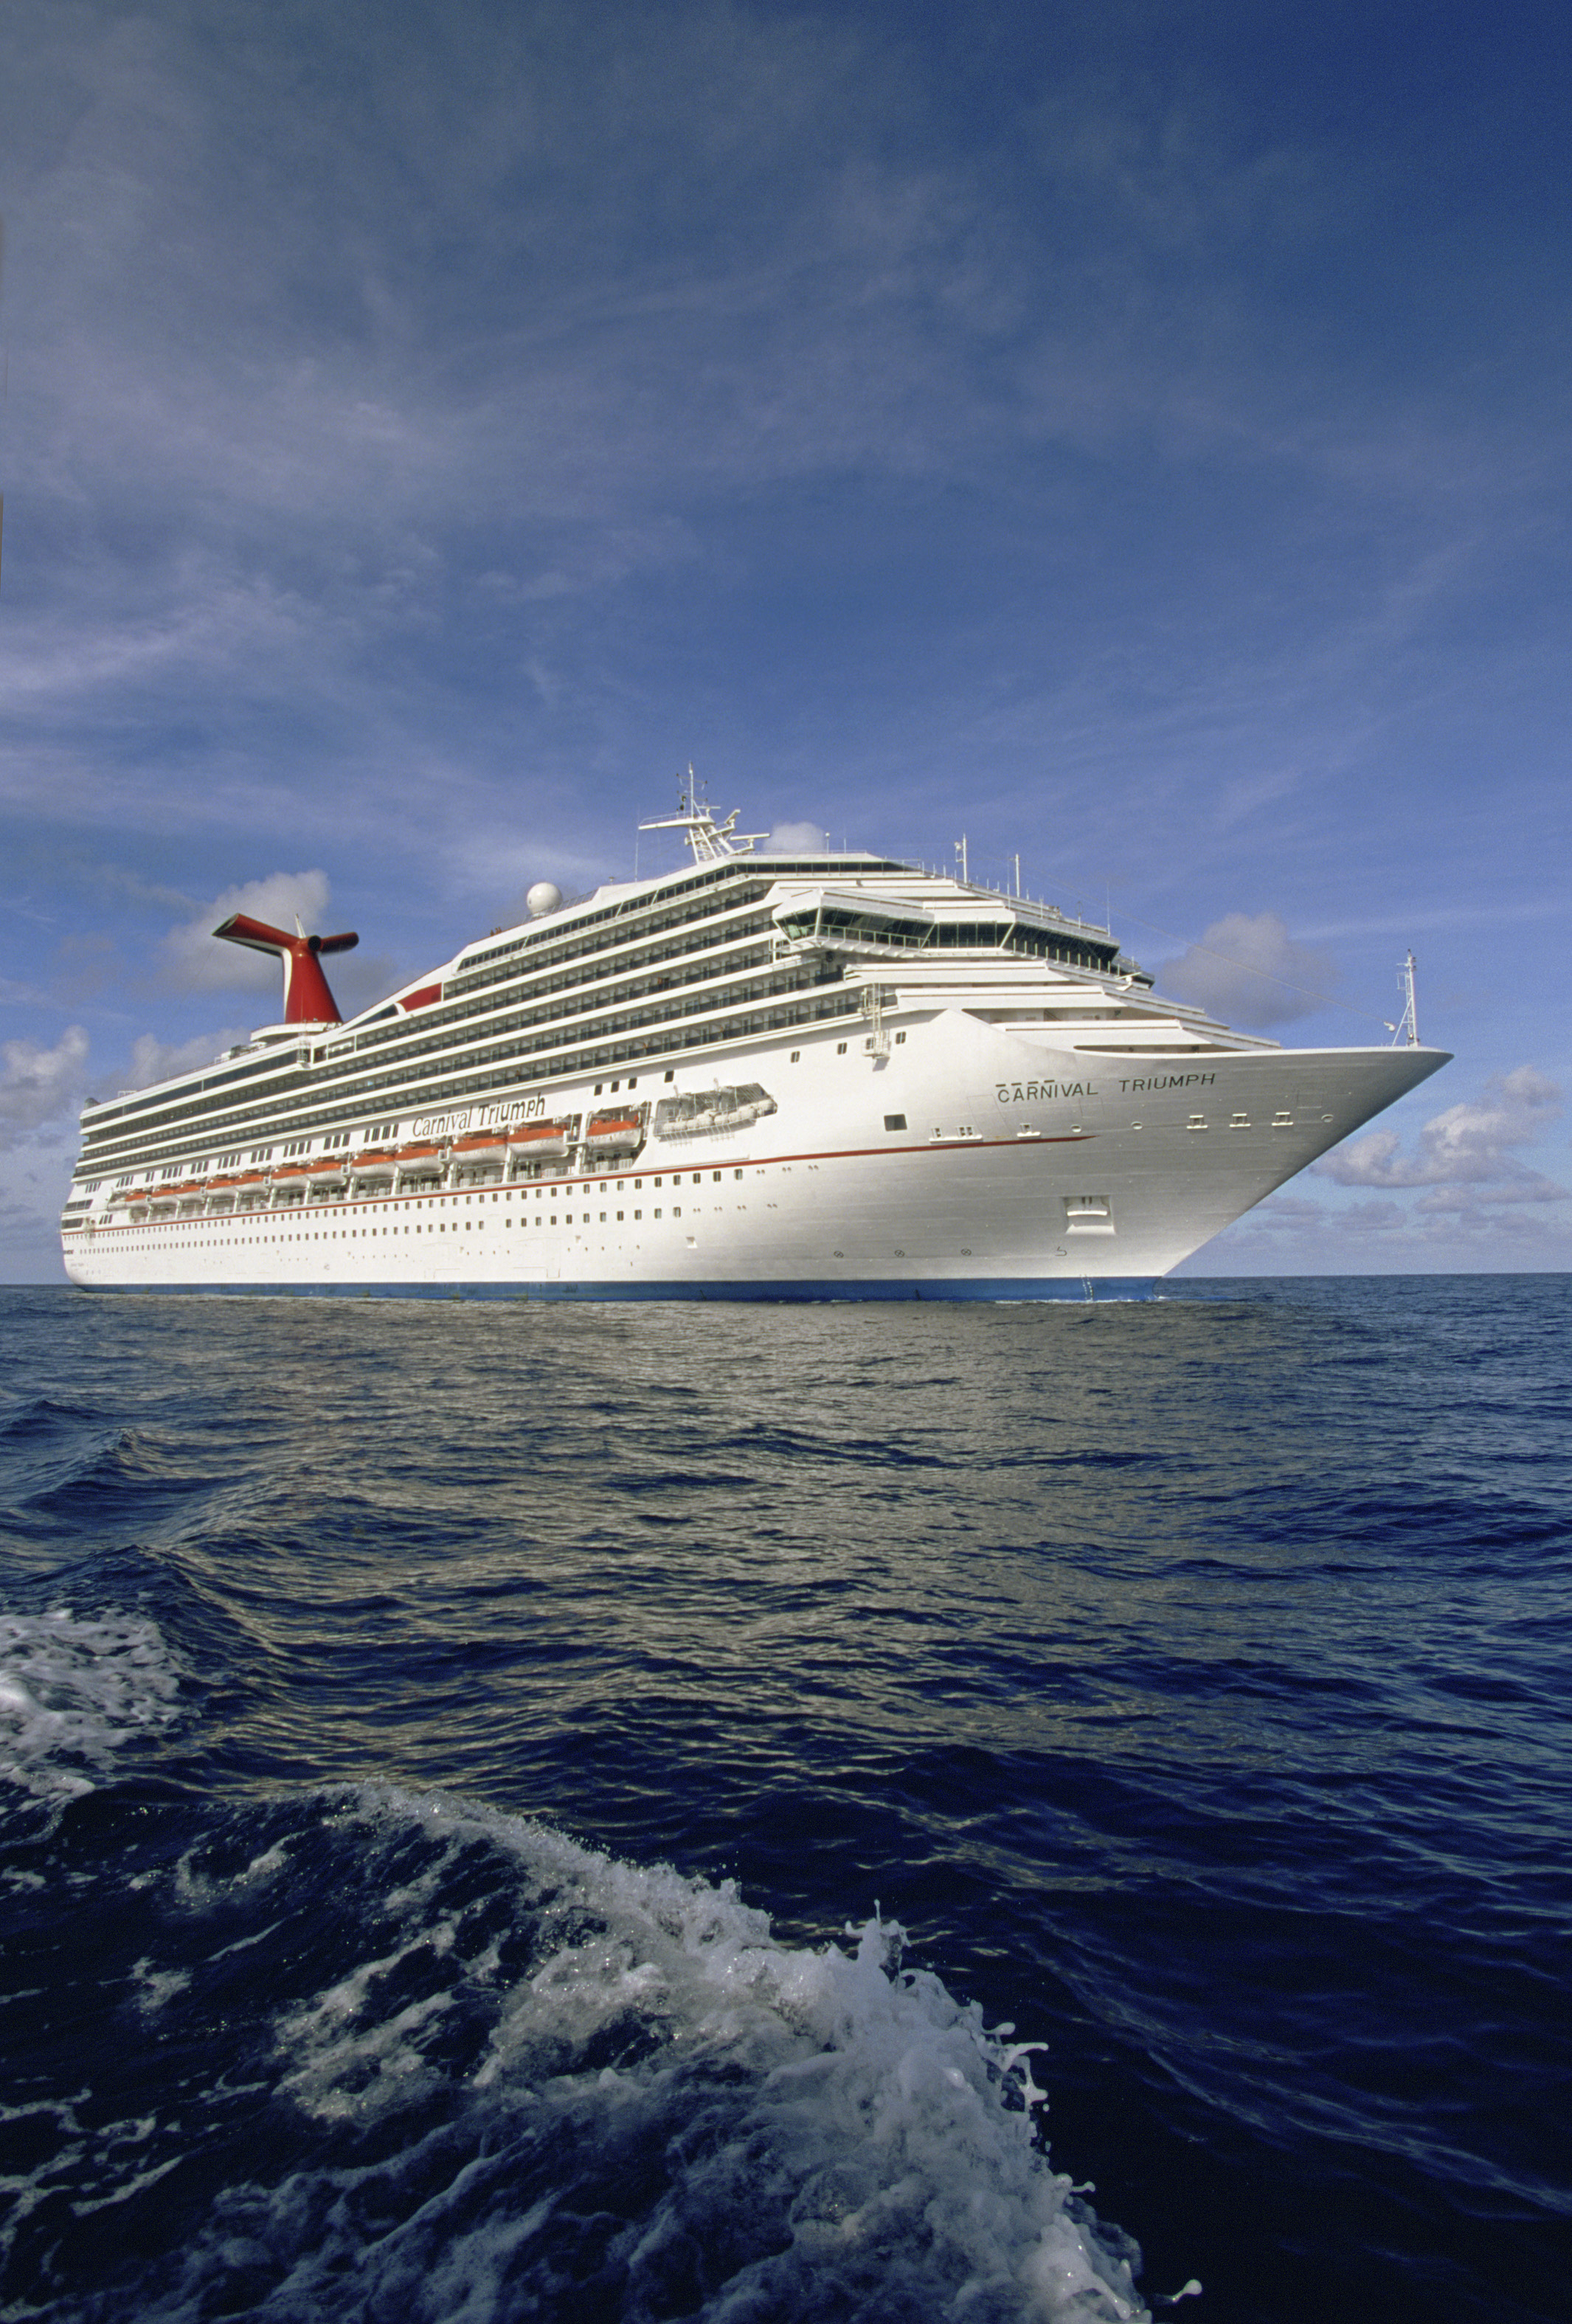 Carnival Triumph to Offer Diverse Inaugural Schedule in 2019-20 with Four- to 14-Day Sailings from New York, Fort Lauderdale, and Norfolk